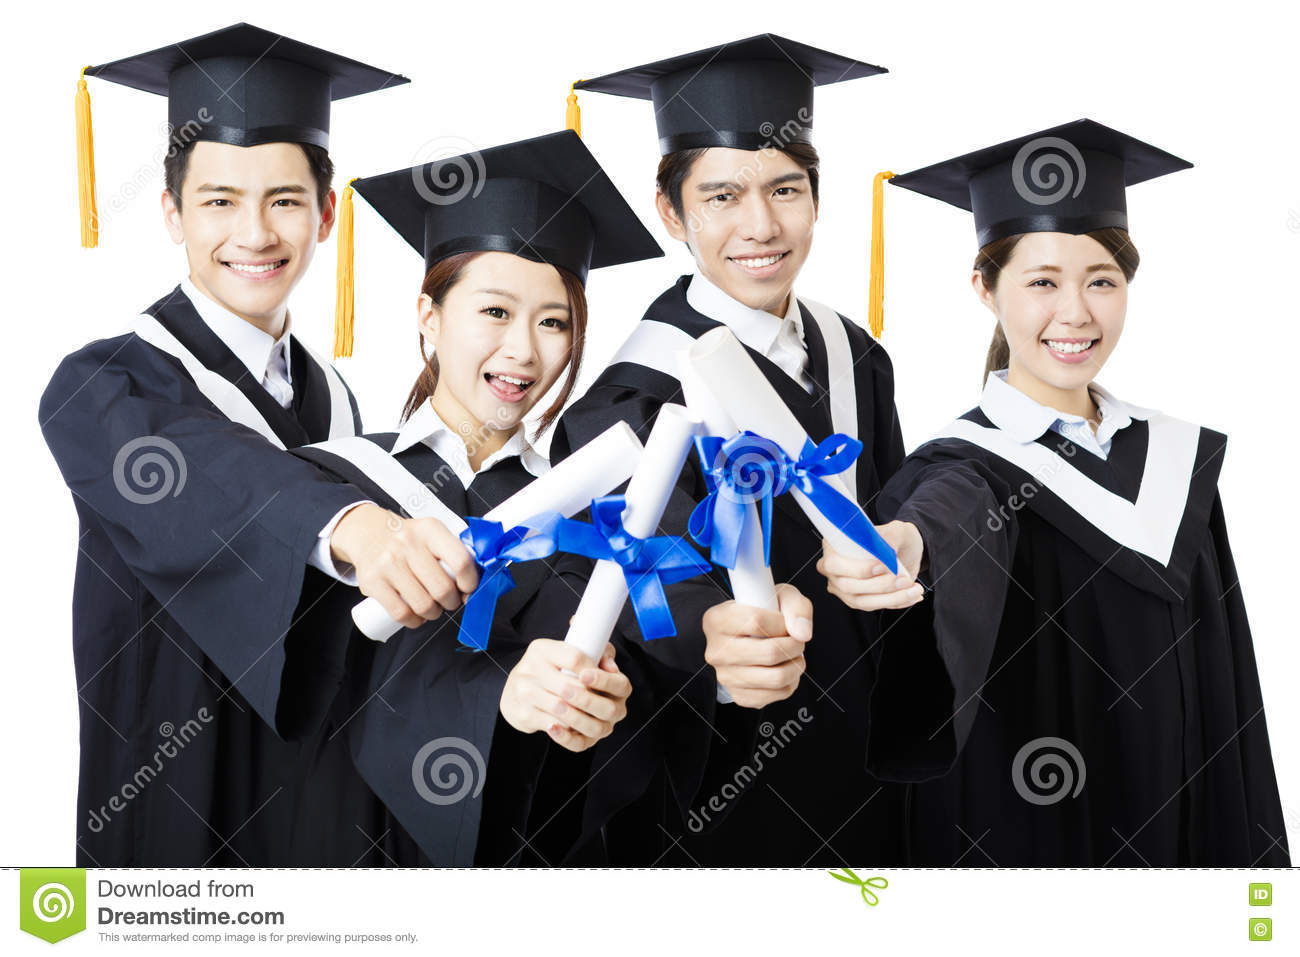 College Graduates In Graduation Gowns Standing And Smiling Stock ...